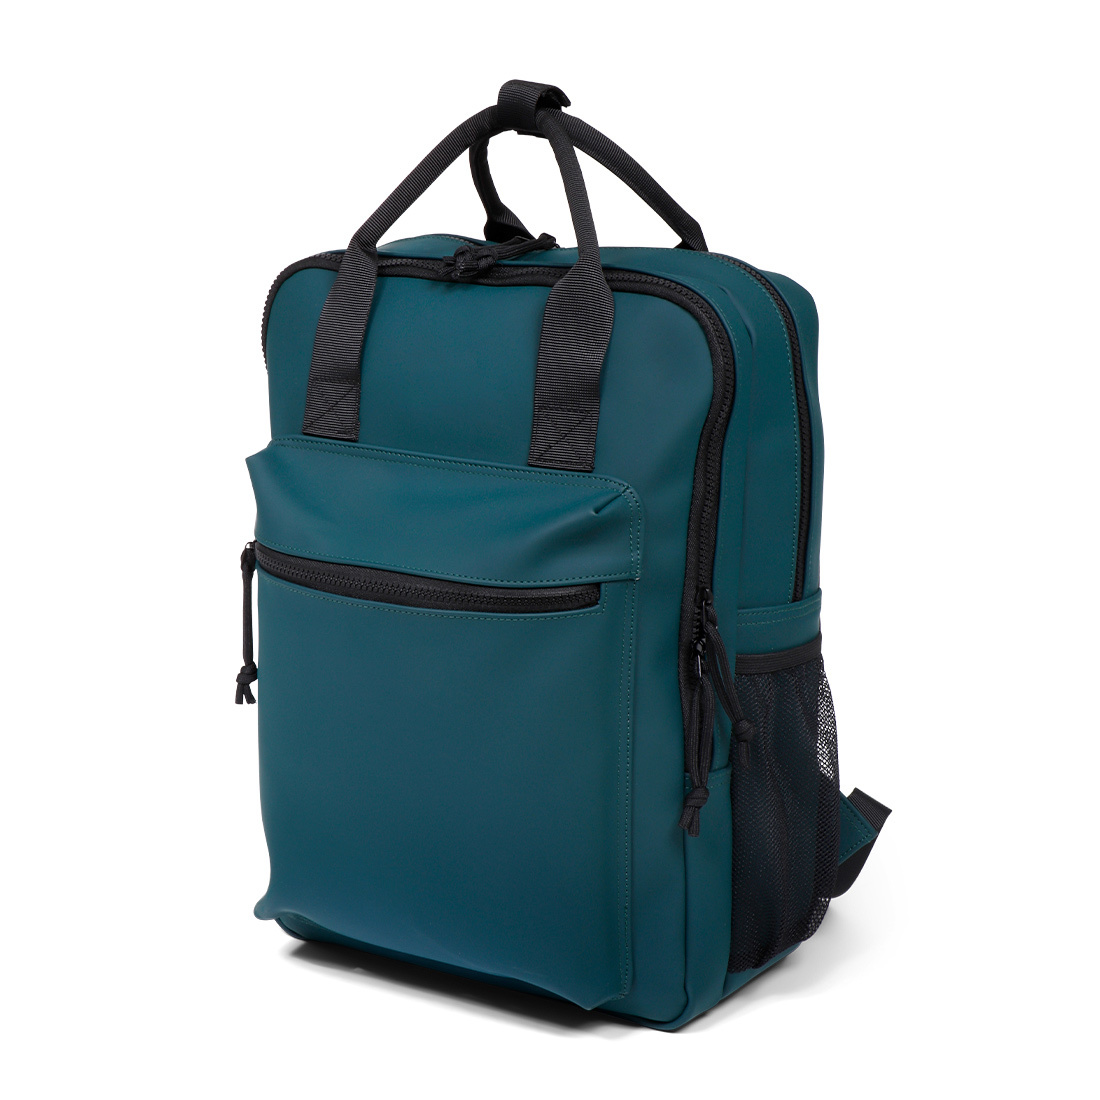 Norländer Dull PU Organizer Backpack Green